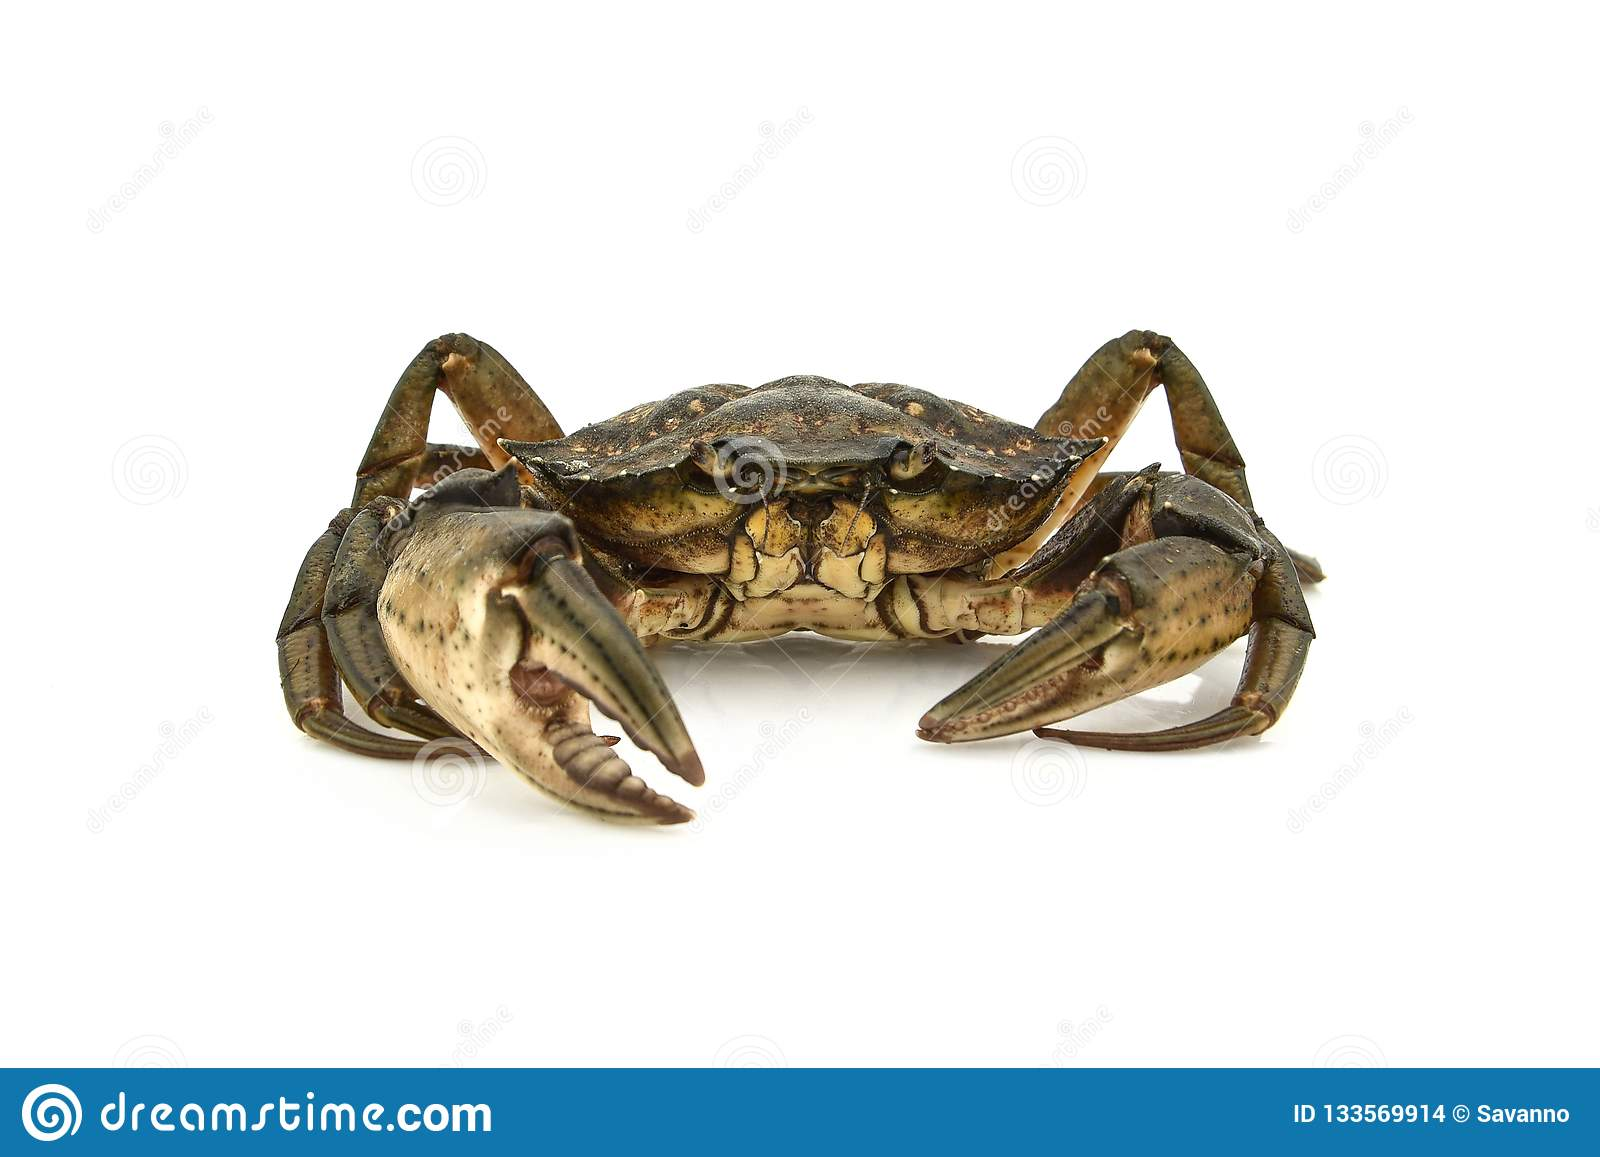 Crab. Black sea crustacean, isolated on white